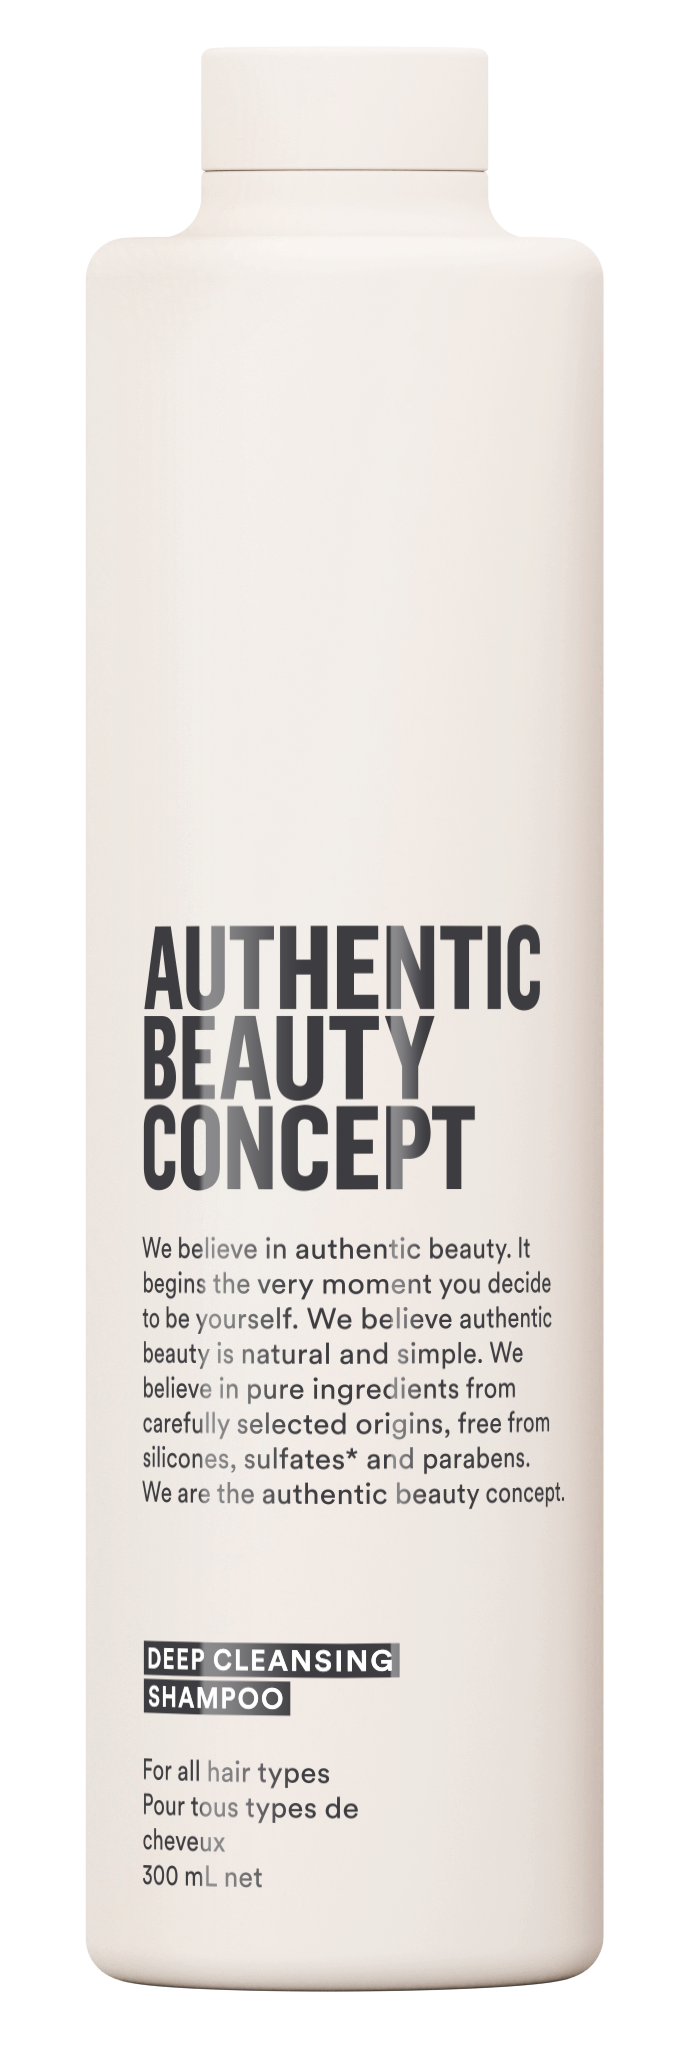 Authentic Beauty Concept Deep Cleansing Shampoo